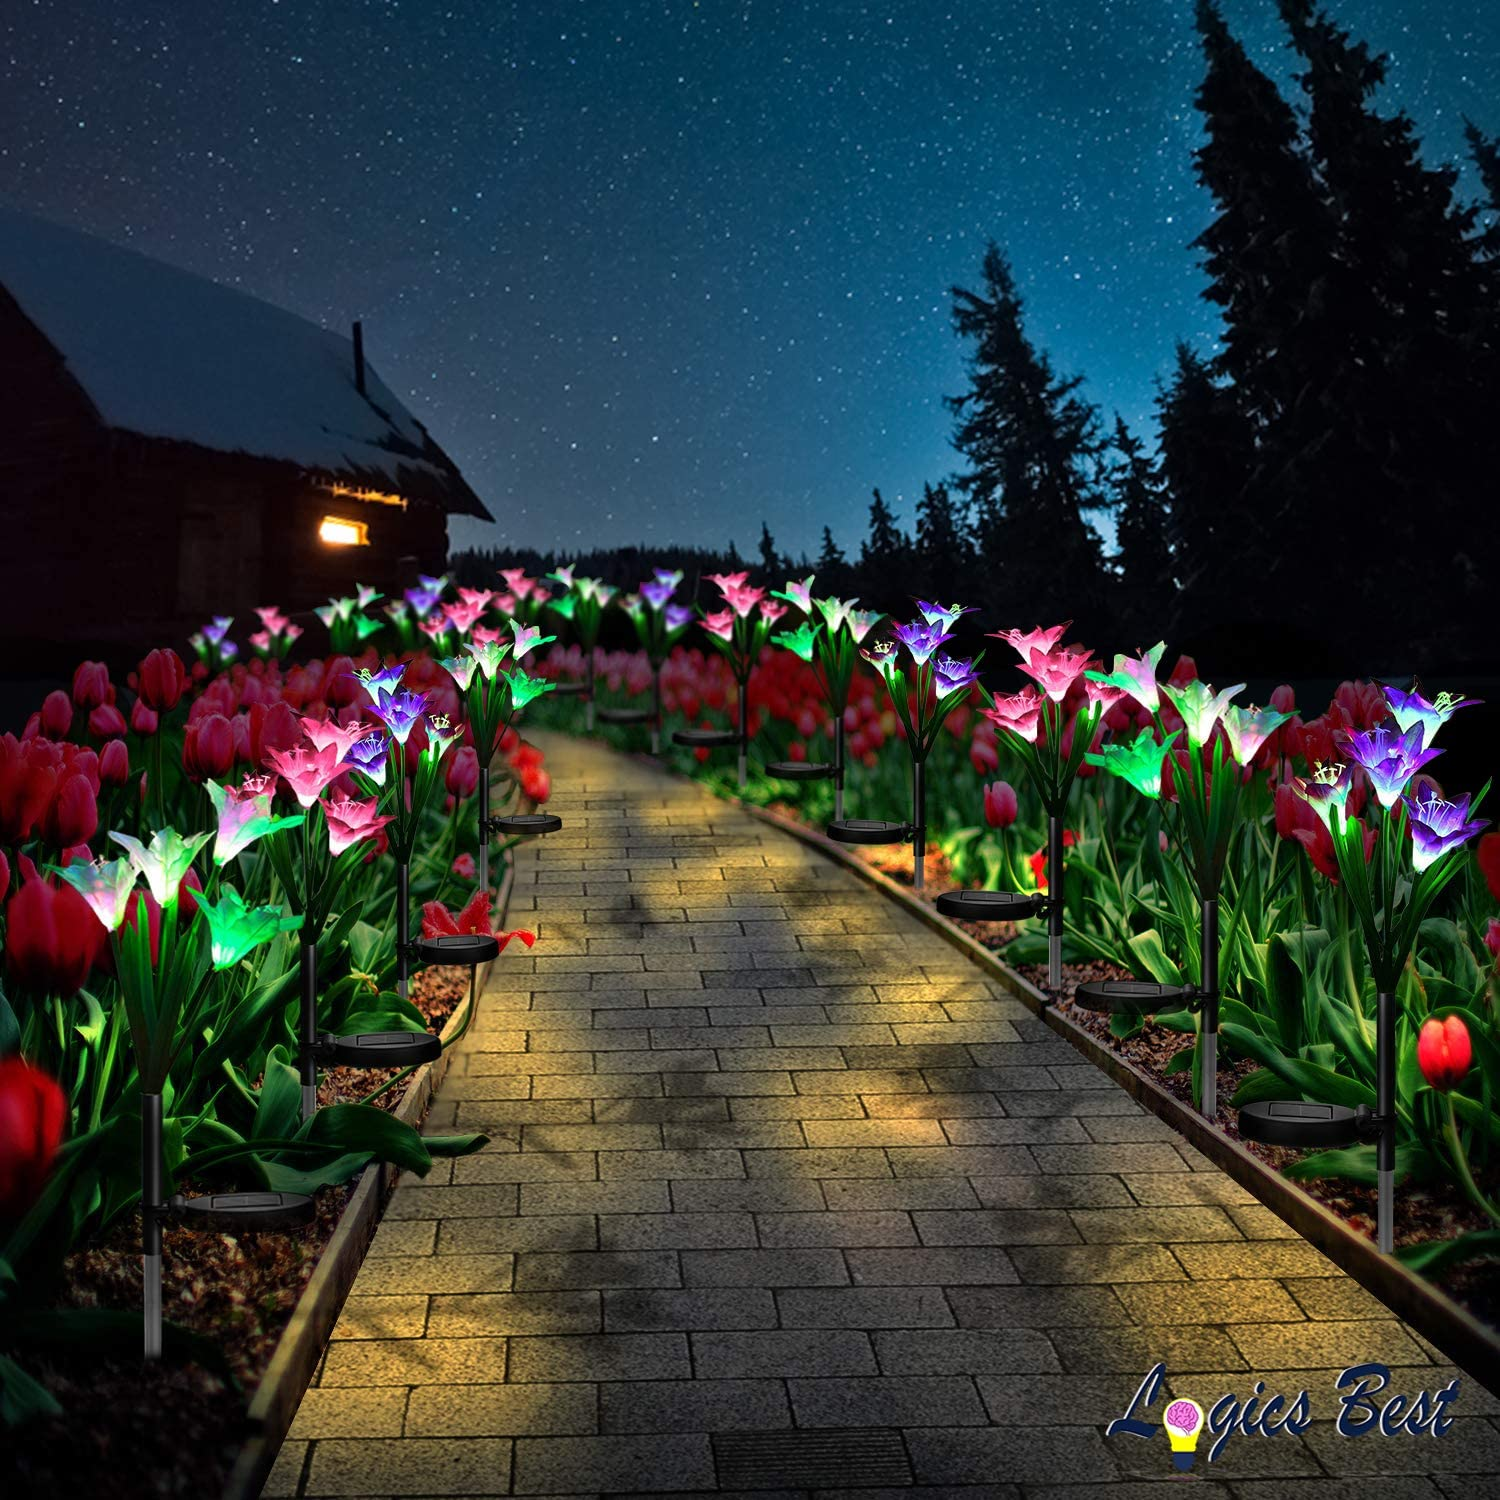 Flower Solar Lights Outdoor Garden Stakes Decorative Outside Garden Lights Lily Solar Garden Stake Lights Waterproof Flowers Decorative Solar Powered Lights With Super Bright Premium Led Bulbs 2 Pack Amazon Com